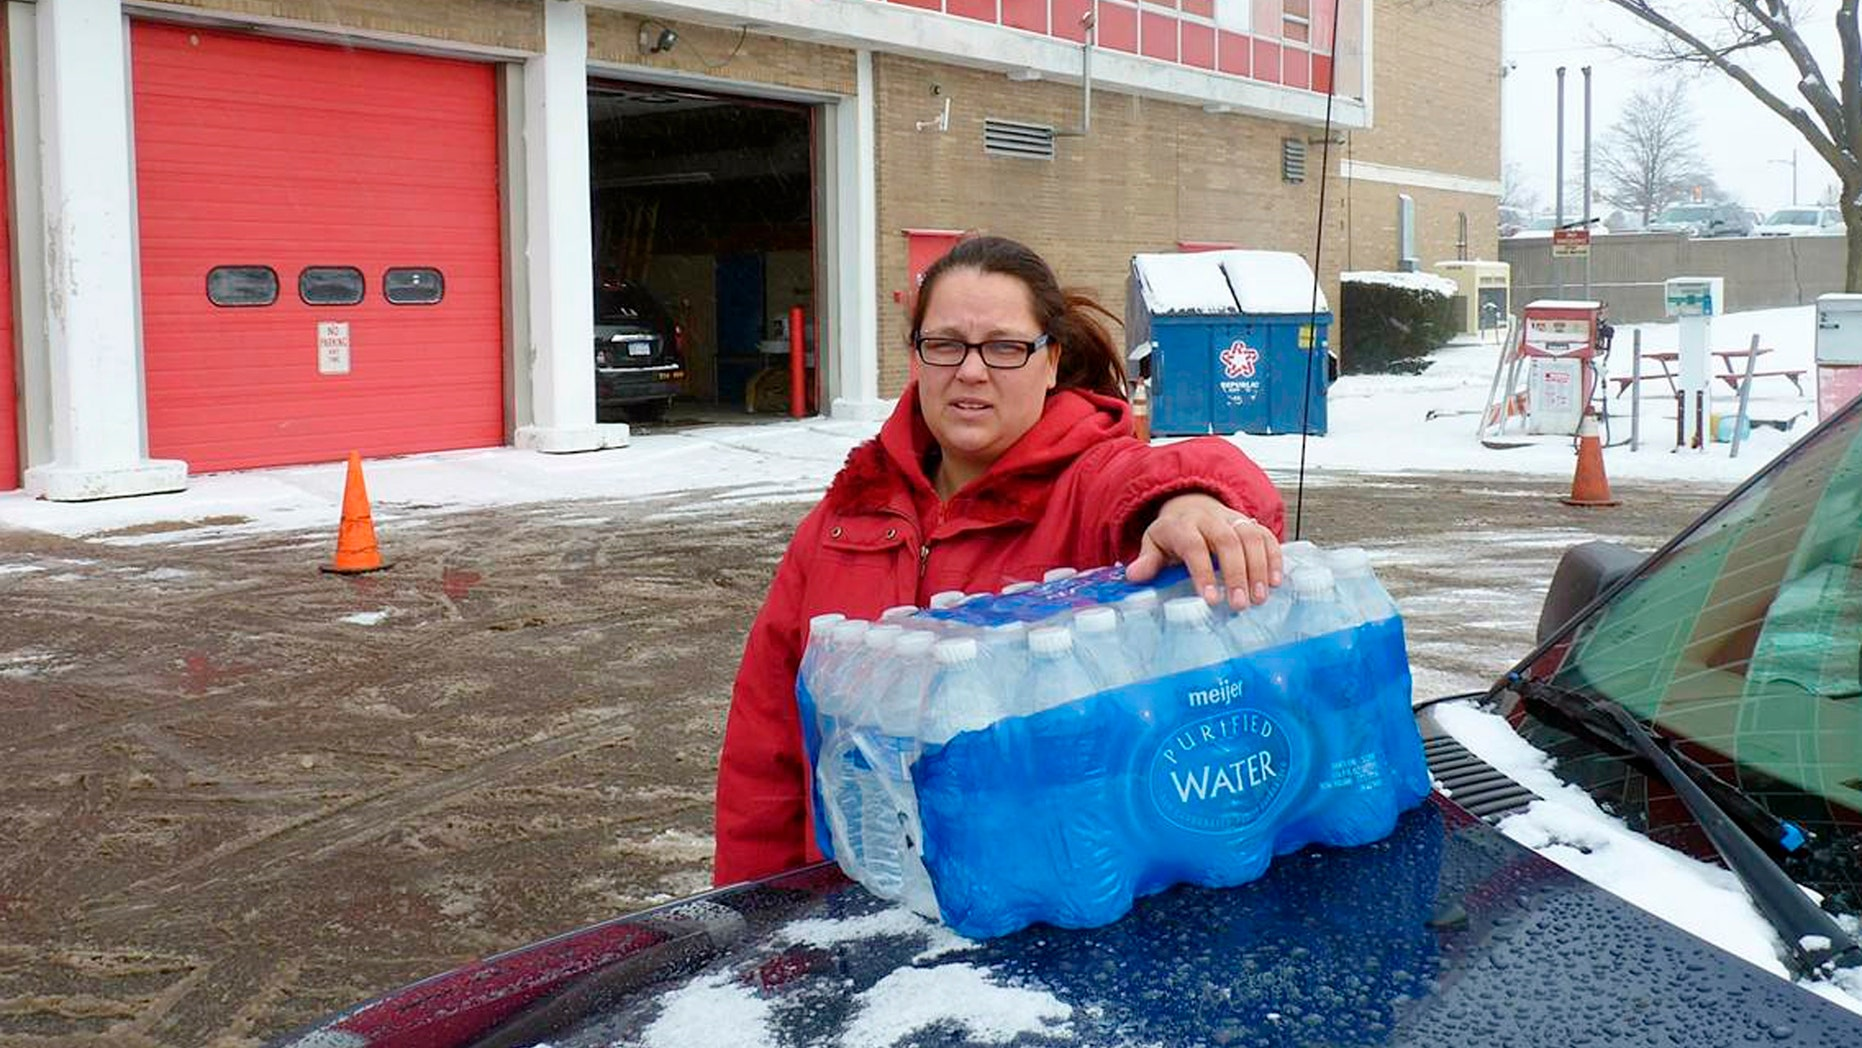 Rabecka Cordell picks up a case of bottled water outside the fire station in Flint, Mich.